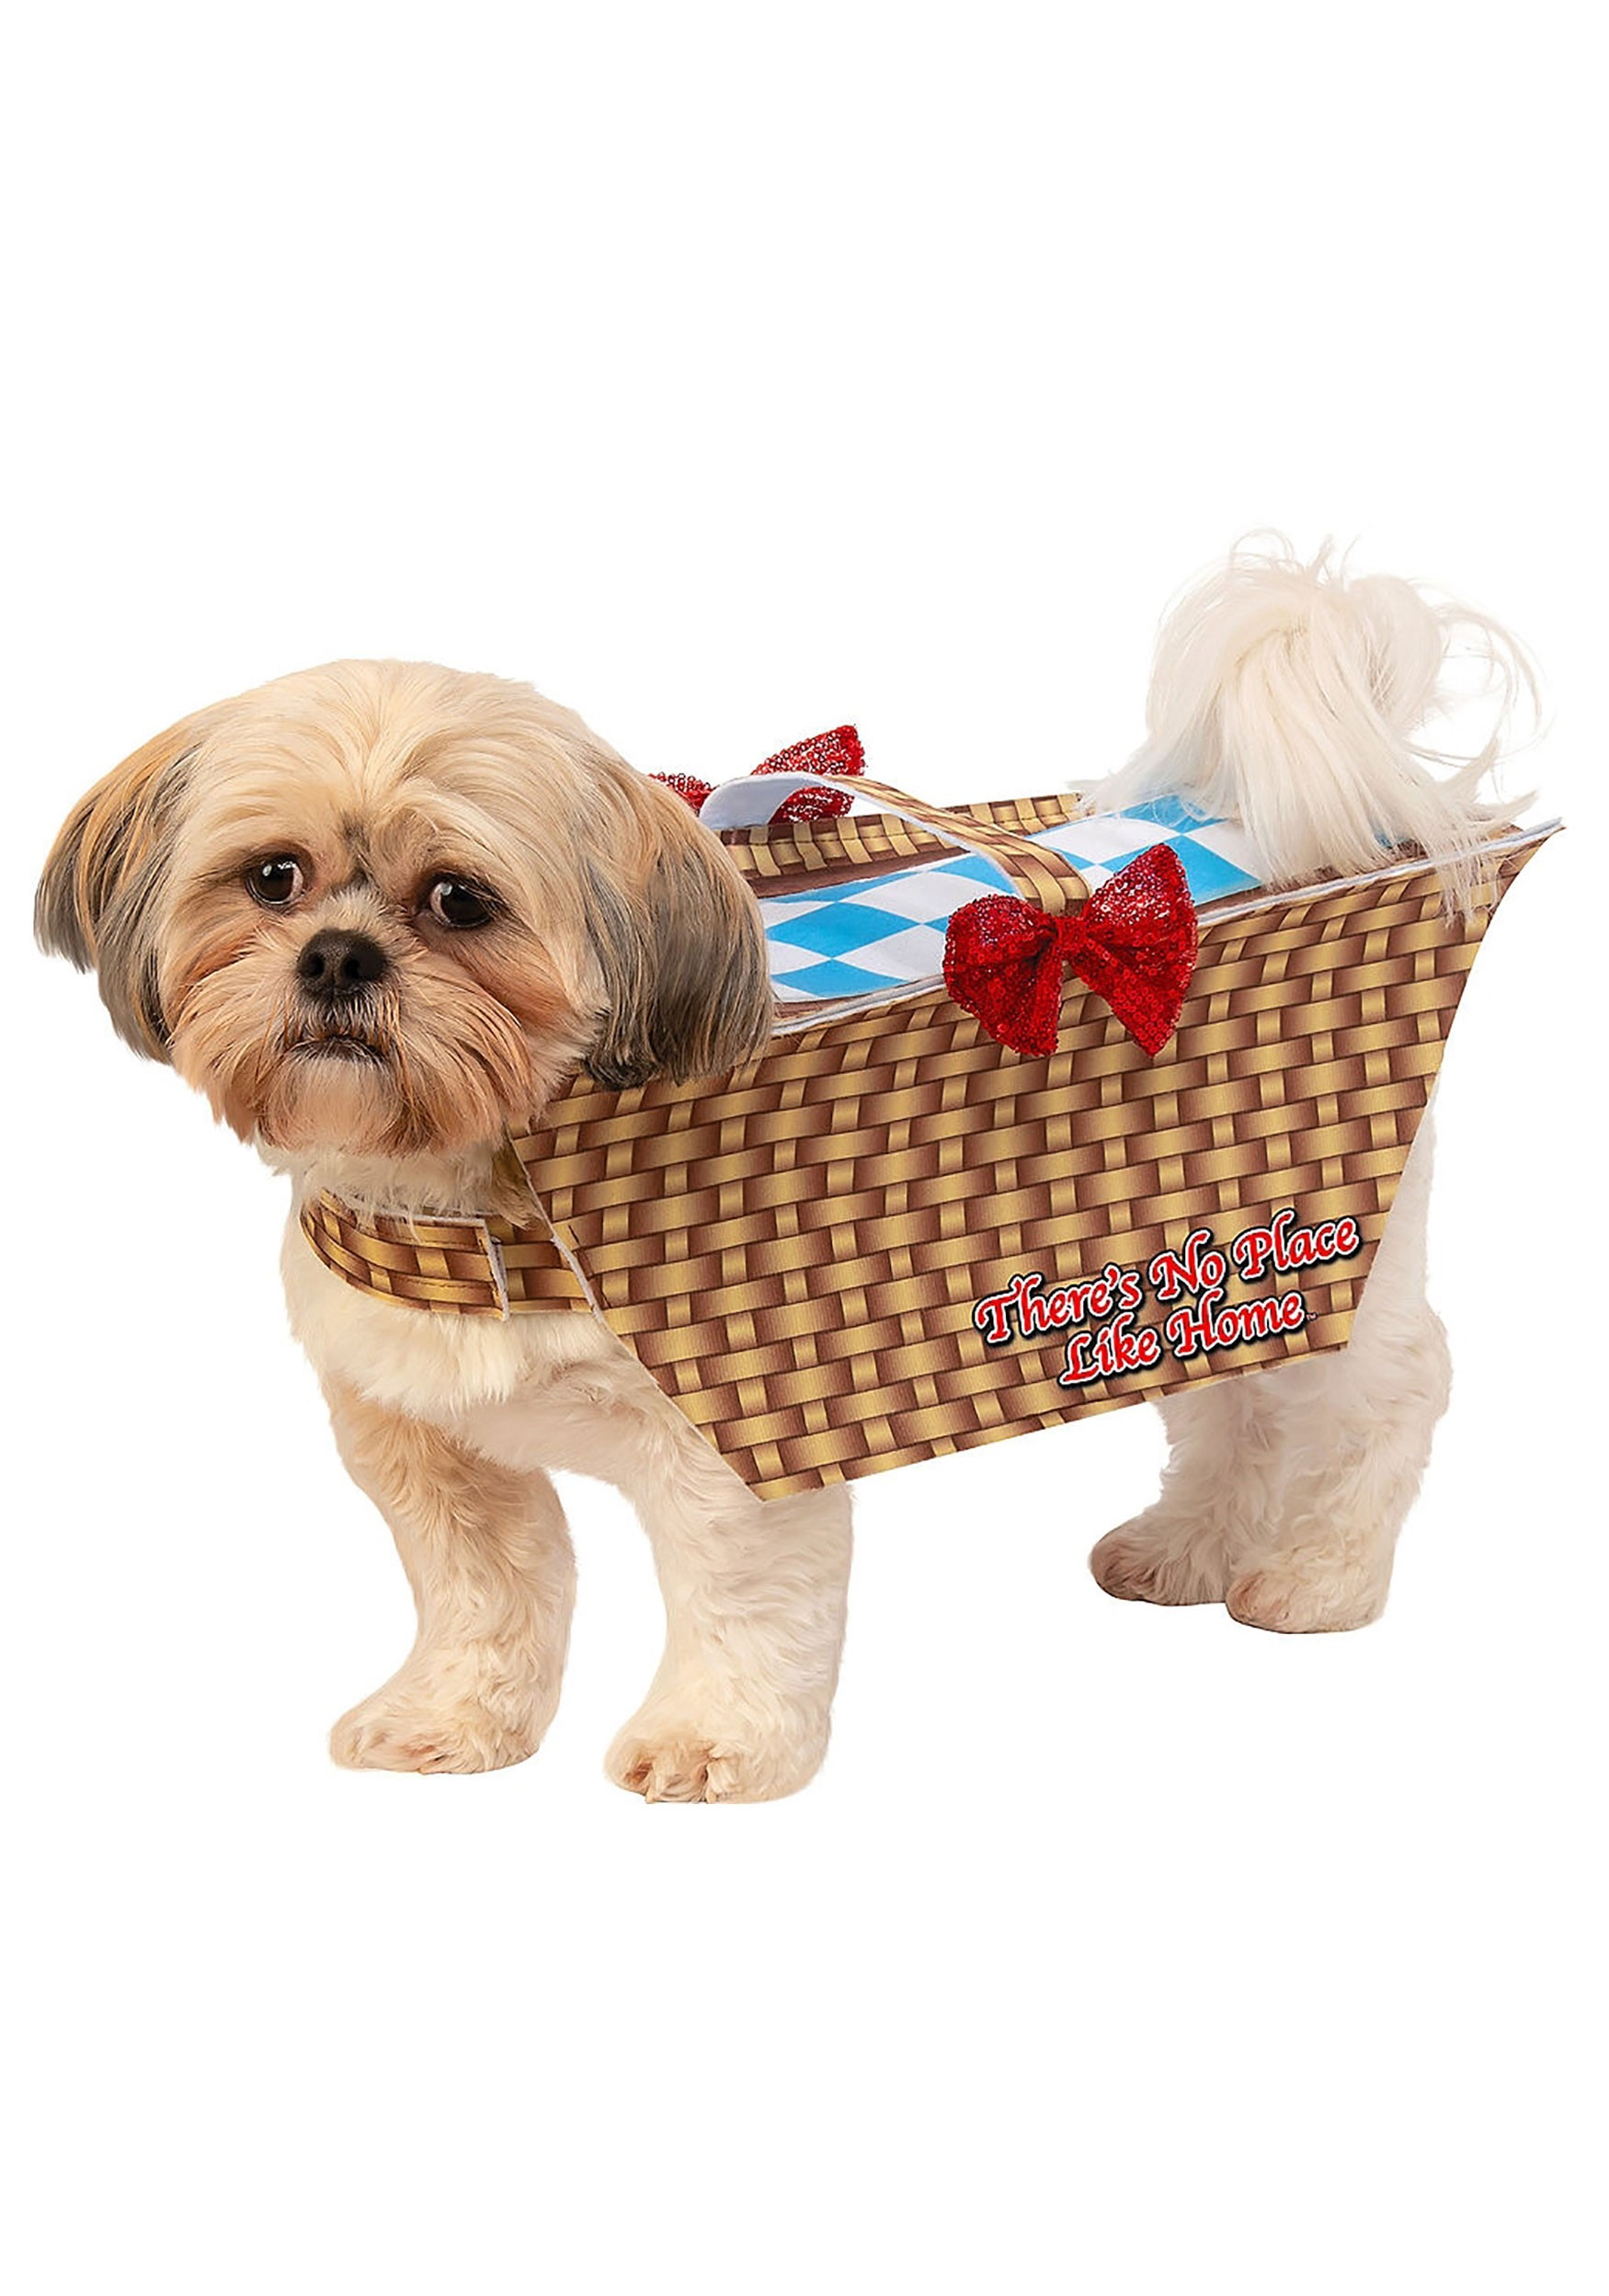 Dog Wizard of Oz Toto in Basket Costume